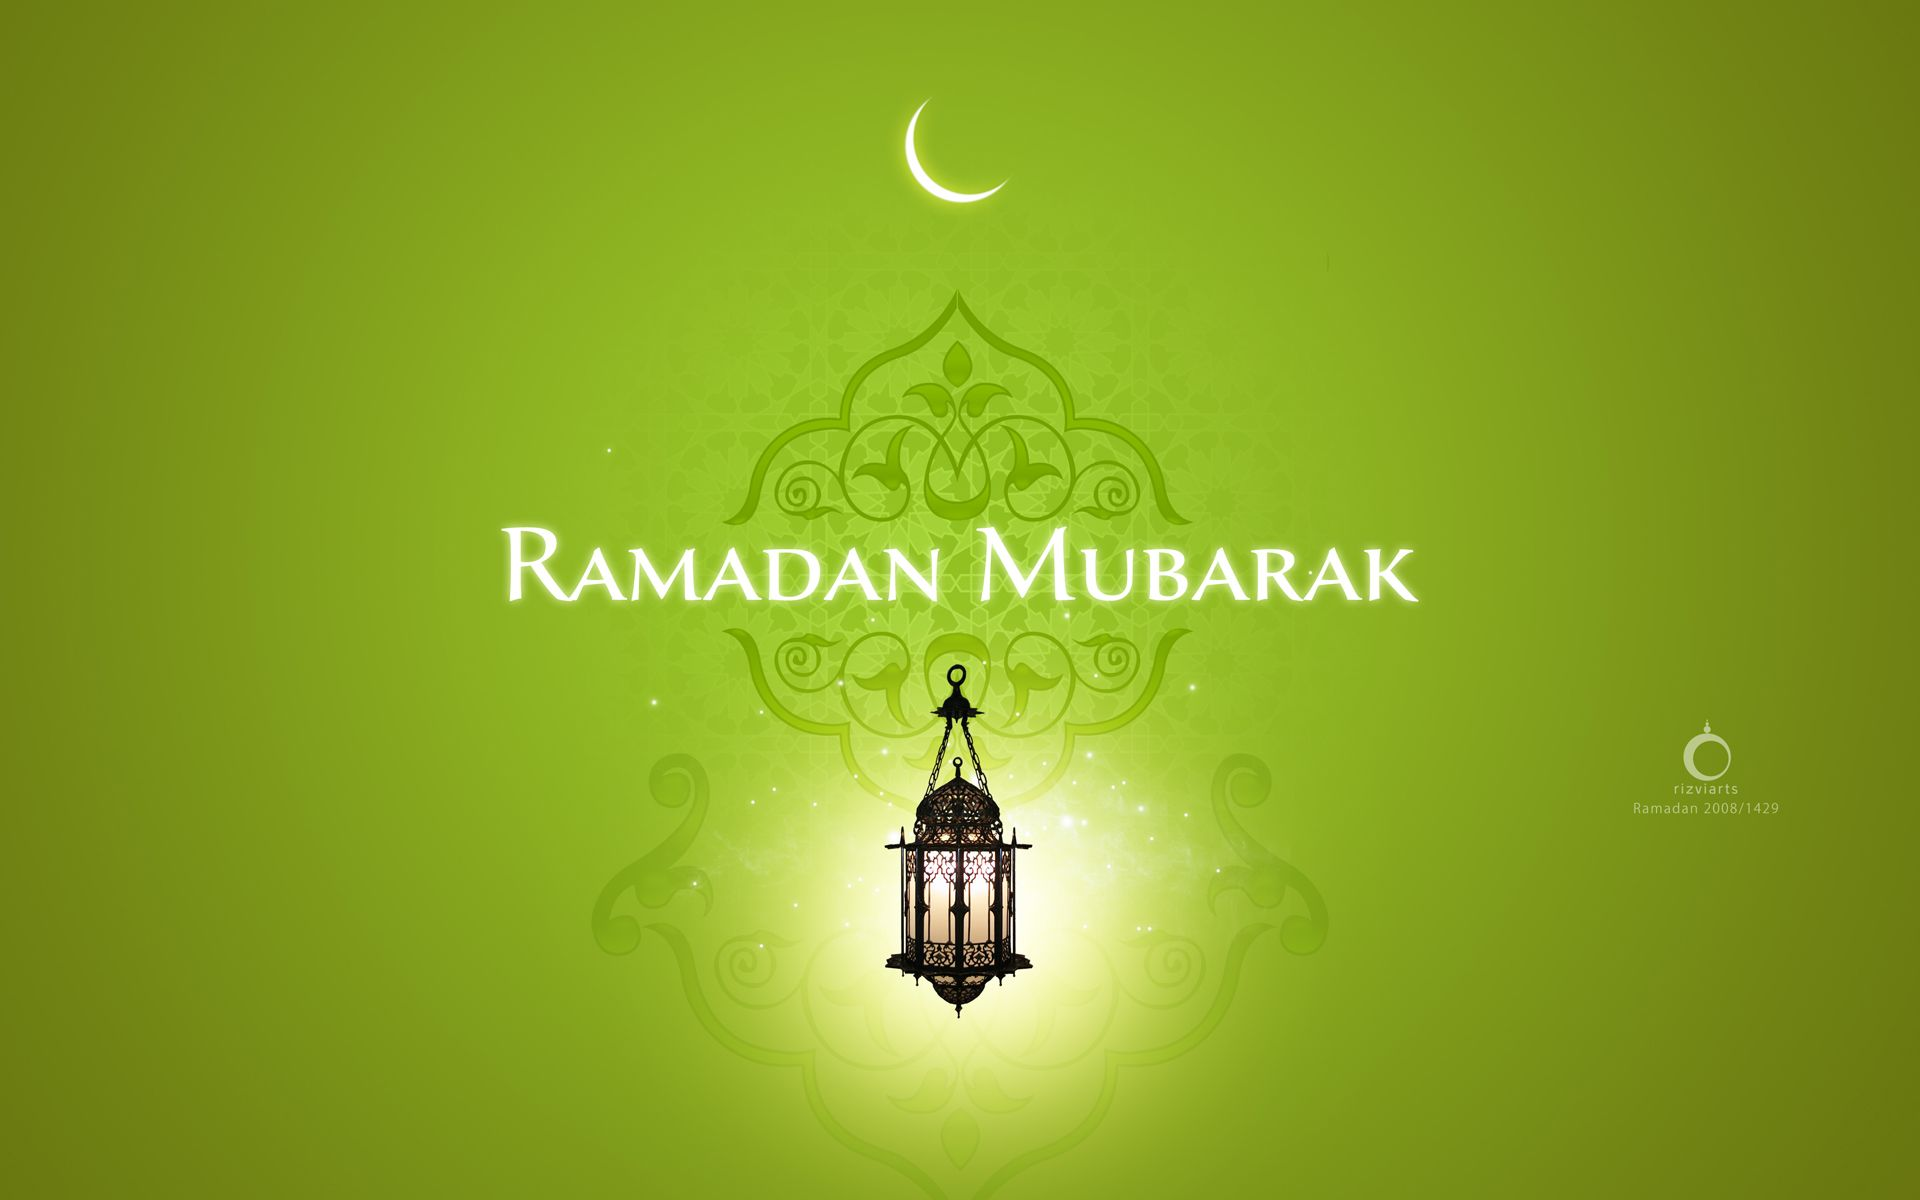 Ramadan 4K wallpapers for your desktop or mobile screen free and easy to download